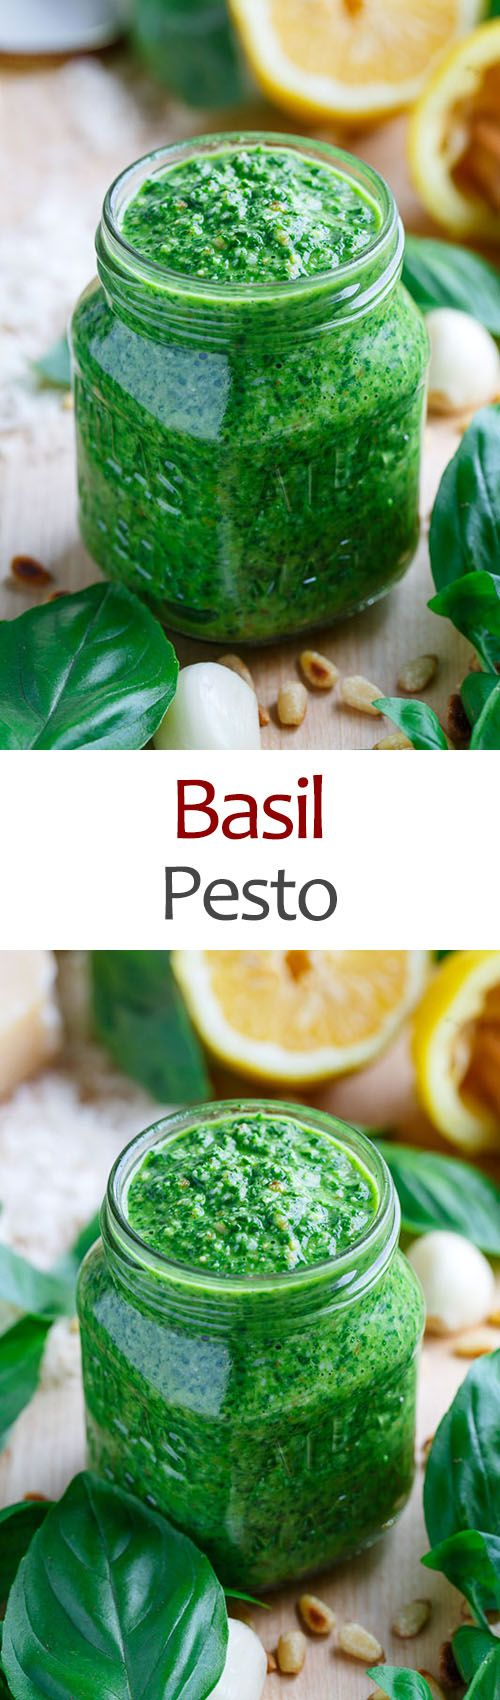 ~~Basil Pesto with Toasted Pine Nuts | A fresh, light and summery homemade basil pesto! One of the great things about basil pesto is that it freezes well so you can save the essence of summer for later. | Closet Cooking~~